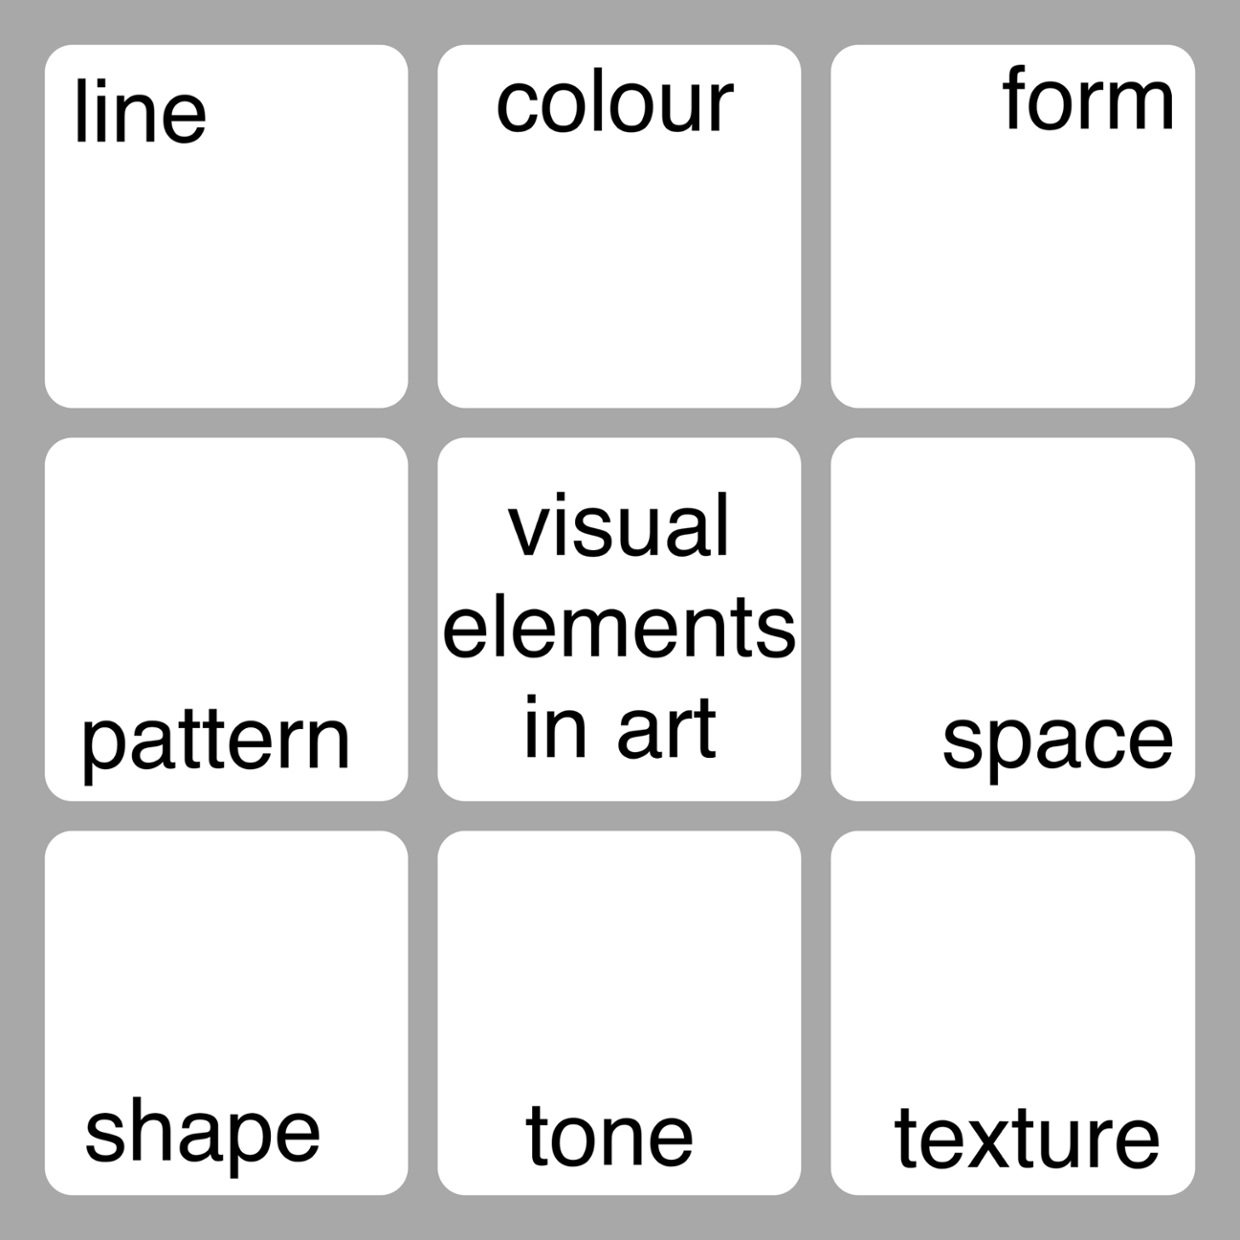 visual elements in art